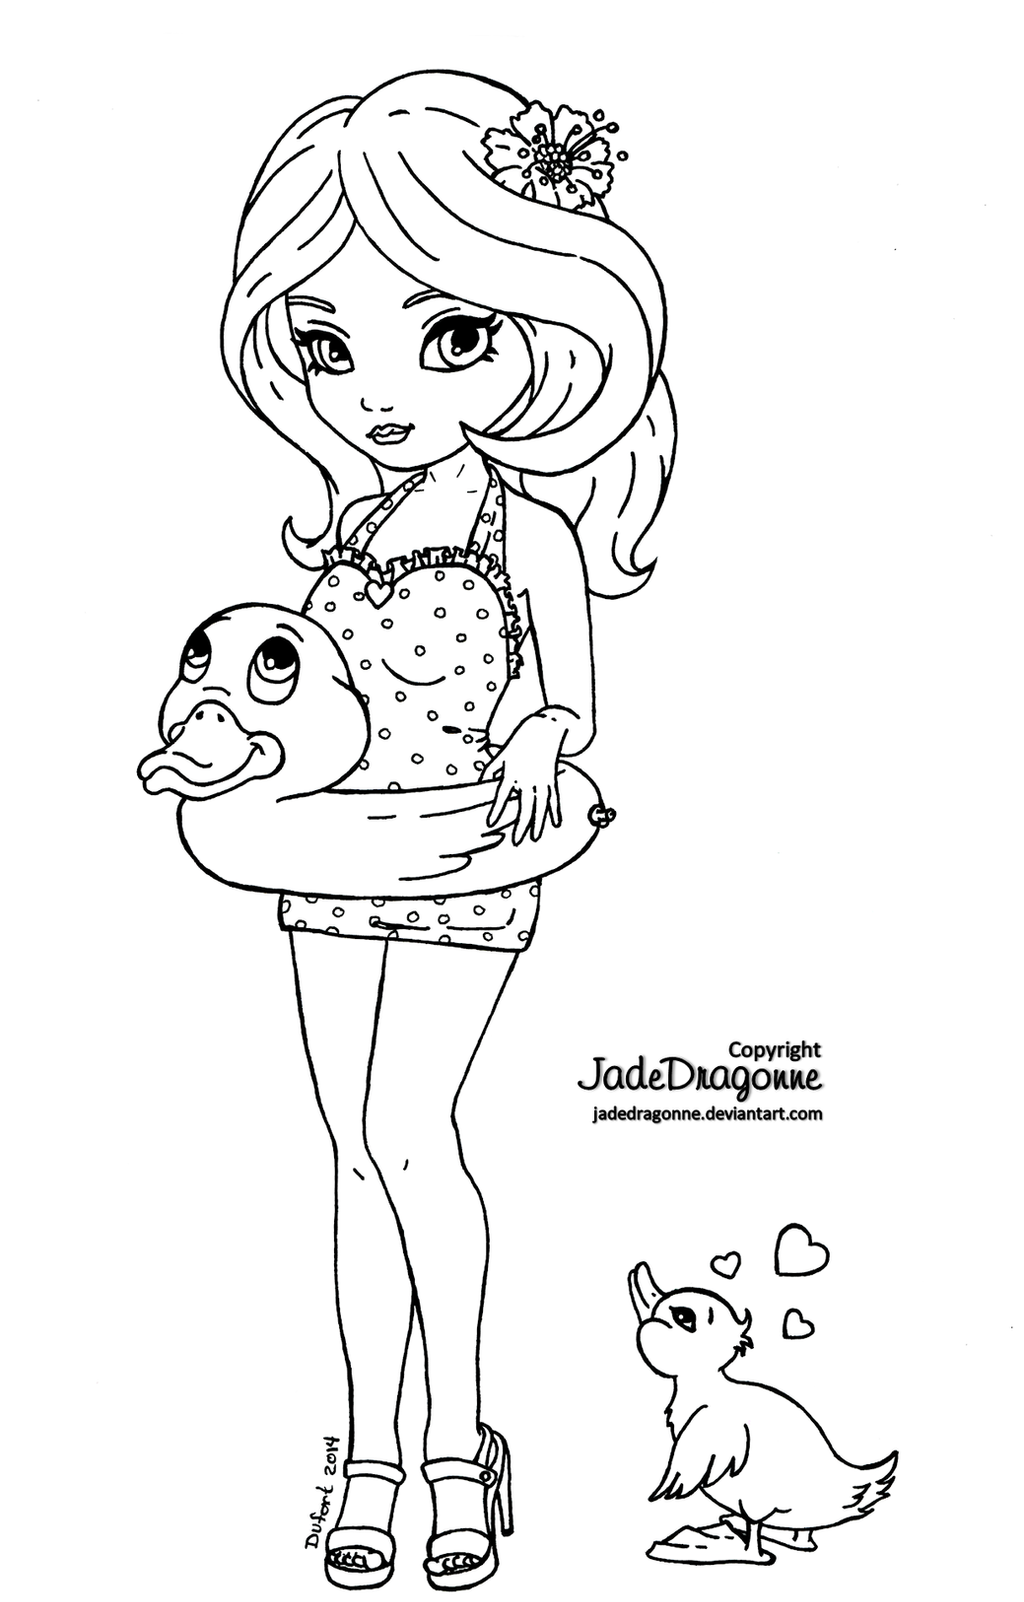 Rubber Duck Pin-up - Lineart by JadeDragonne